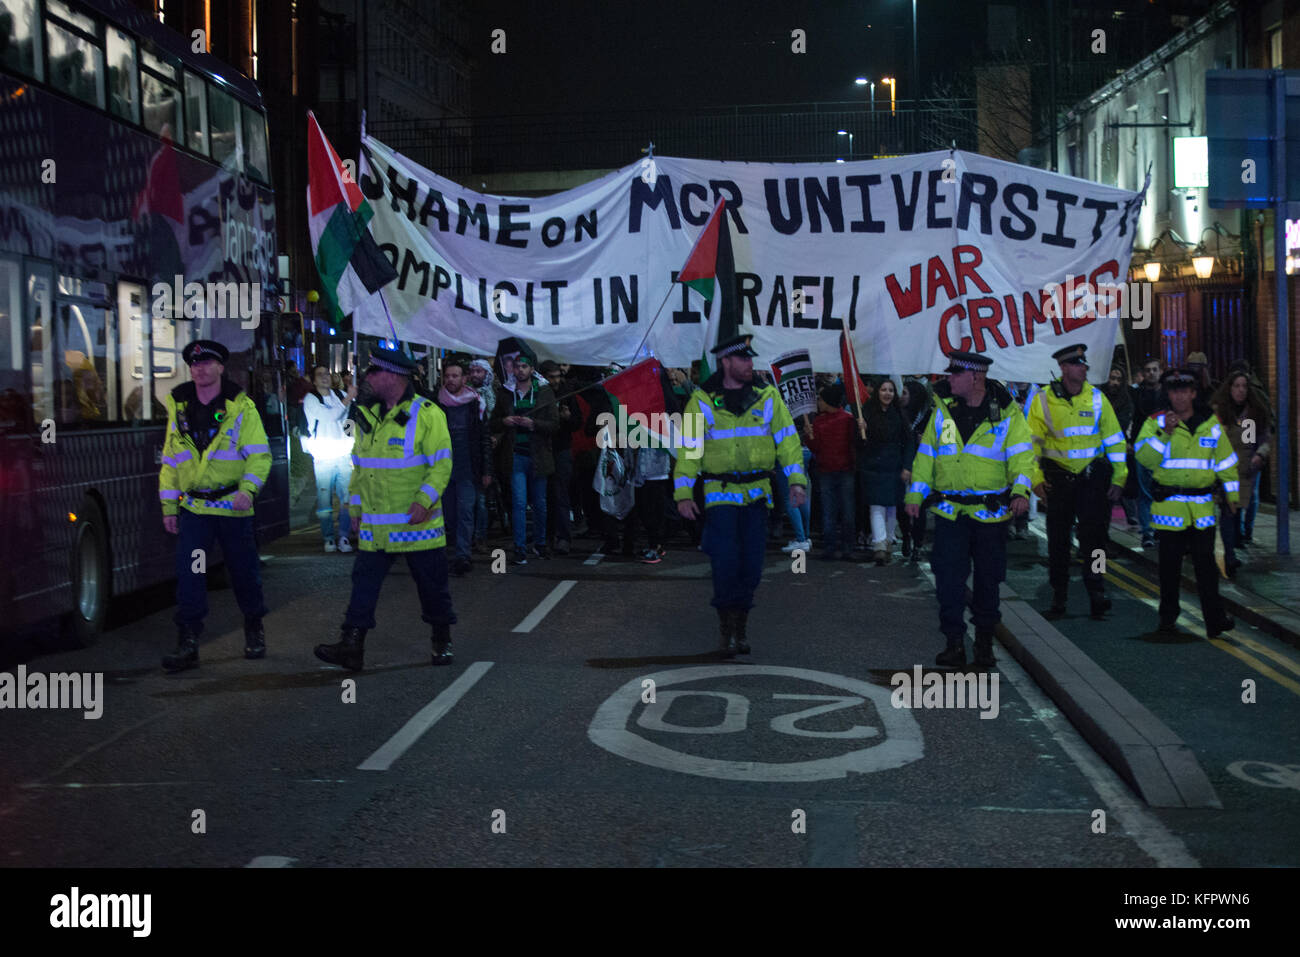 Manchester, UK. 31st Oct, 2017. People participate in a demonstration to commemorate 100 years since the Balfour Stock Photo